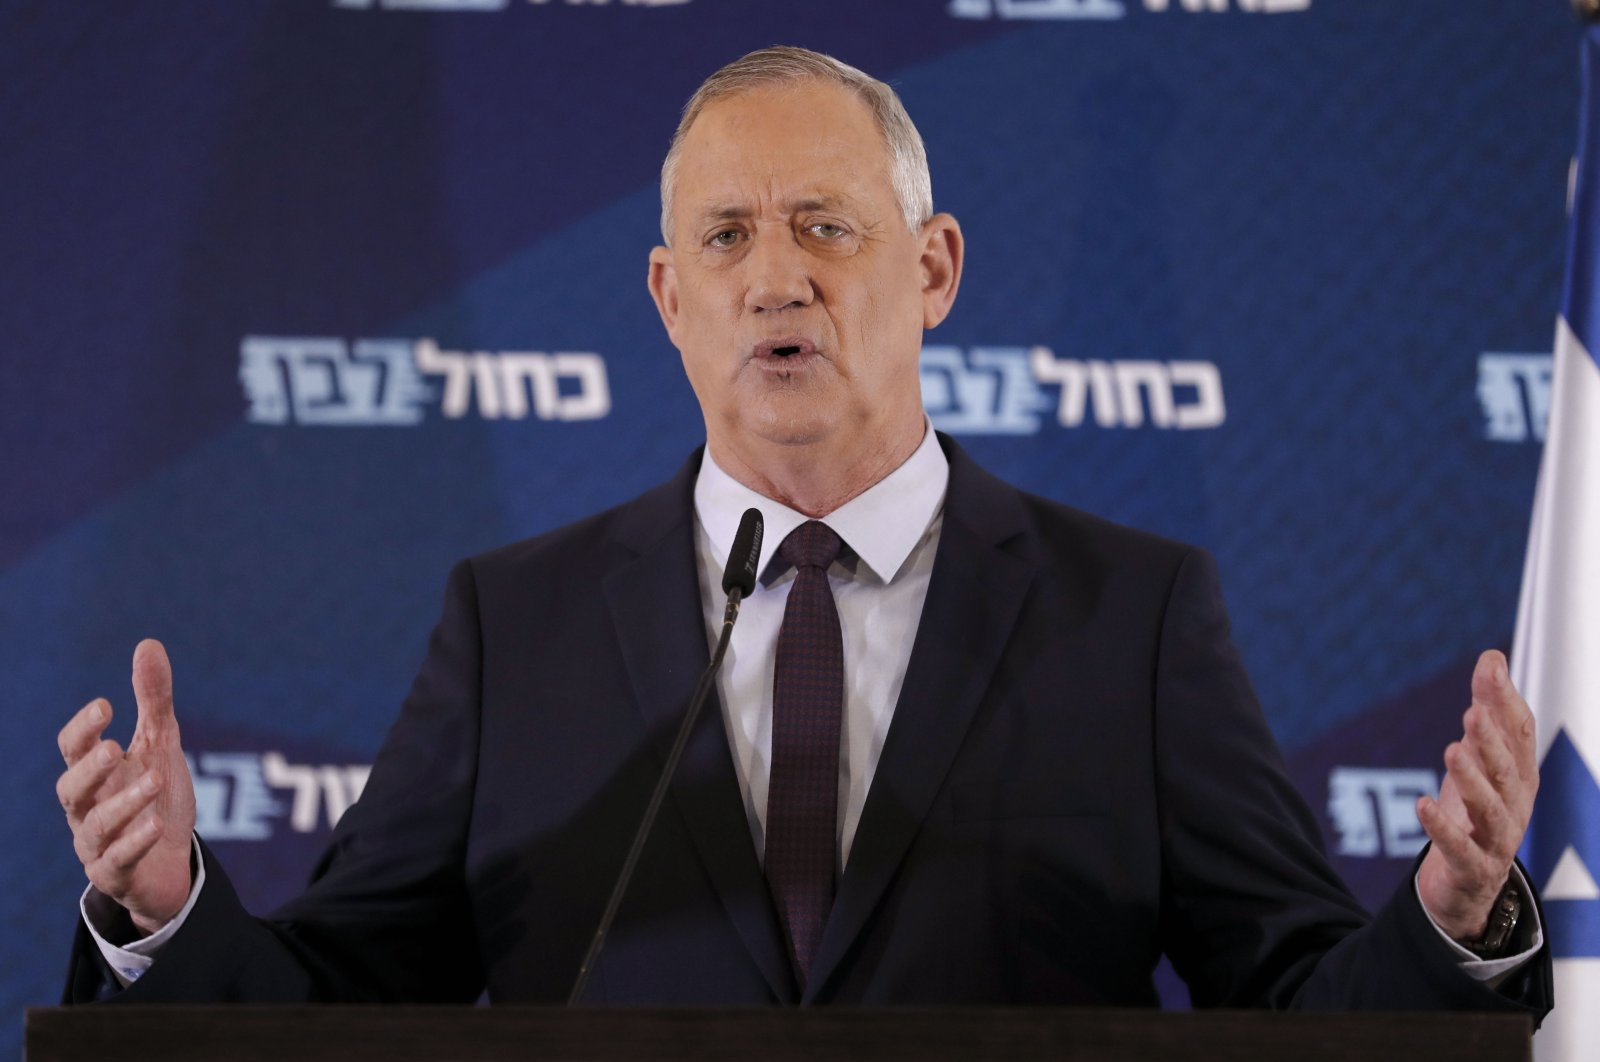 Israel's Blue and White electoral alliance leader Benny Gantz delivers a statement in the central Israeli city of Ramat Gan, March 7, 2020. (AFP Photo)